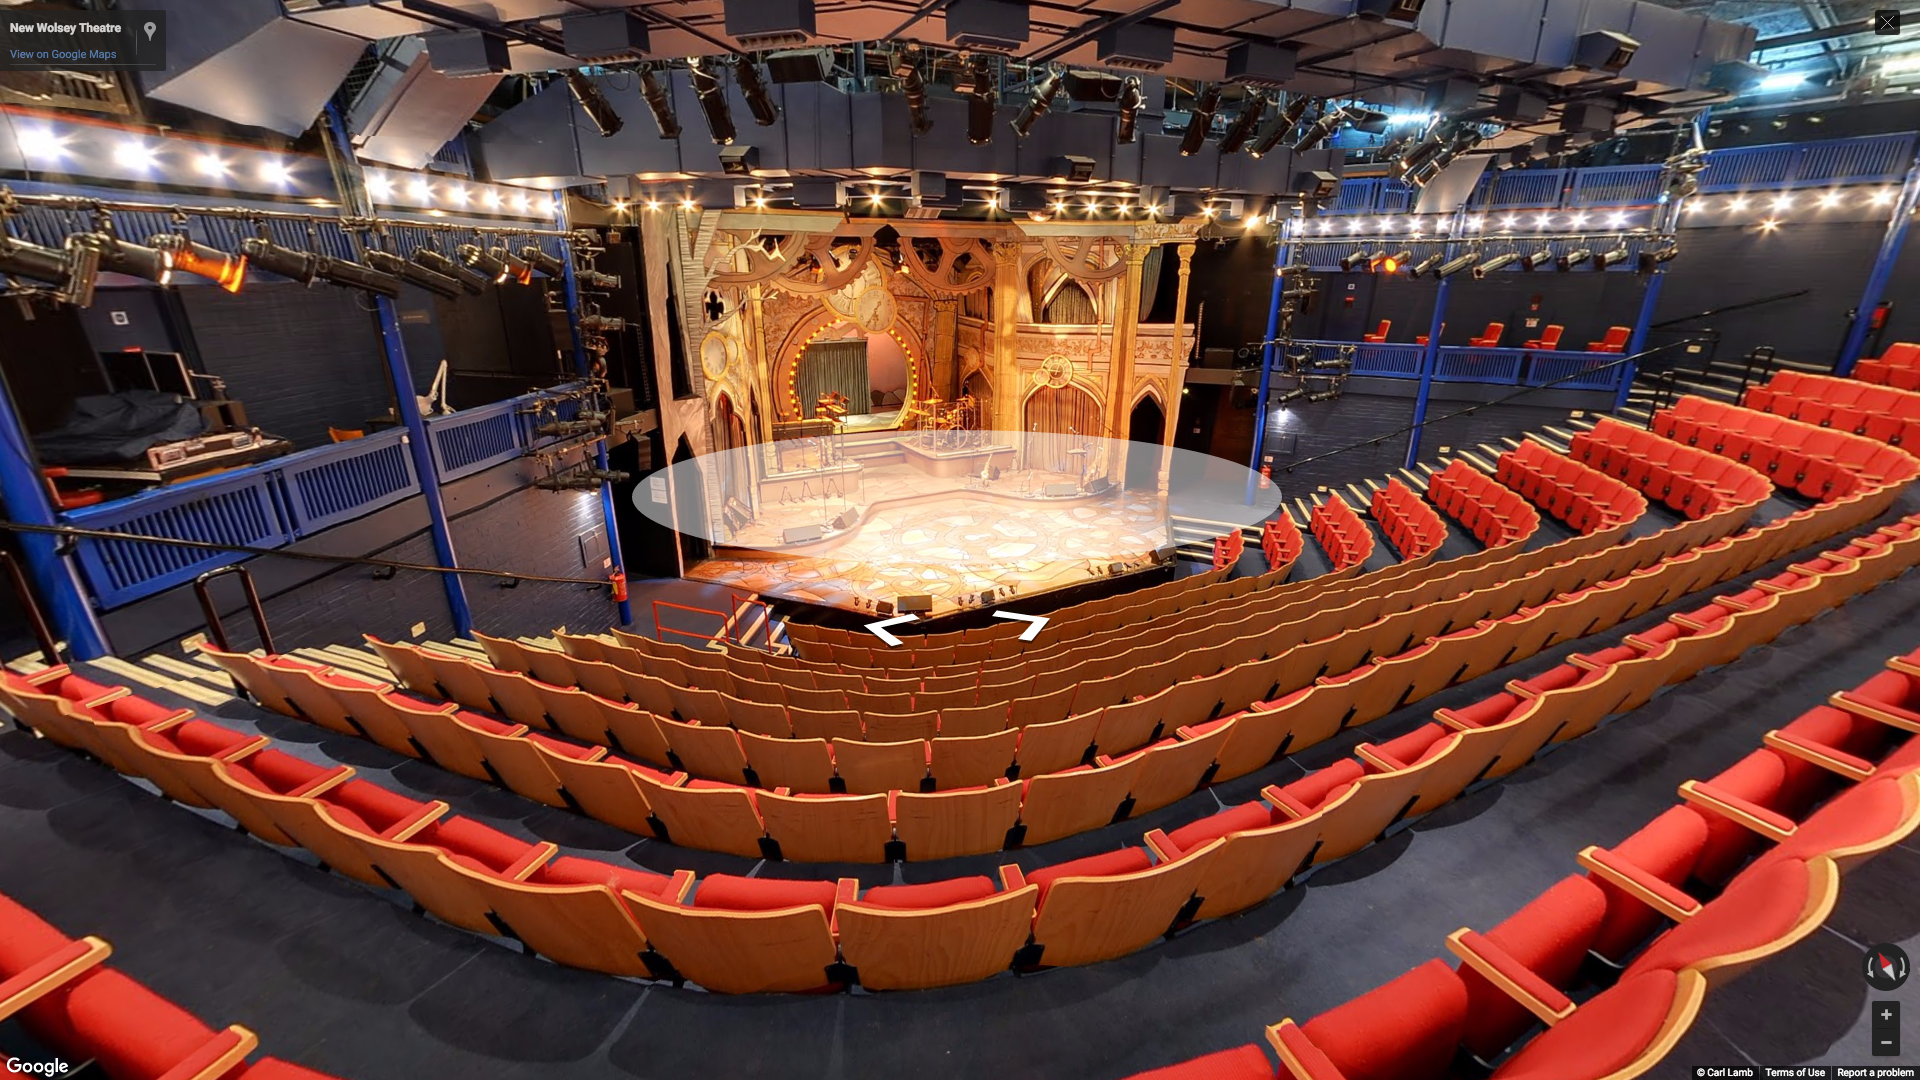 New Wolsey theatre using Google street view for your business